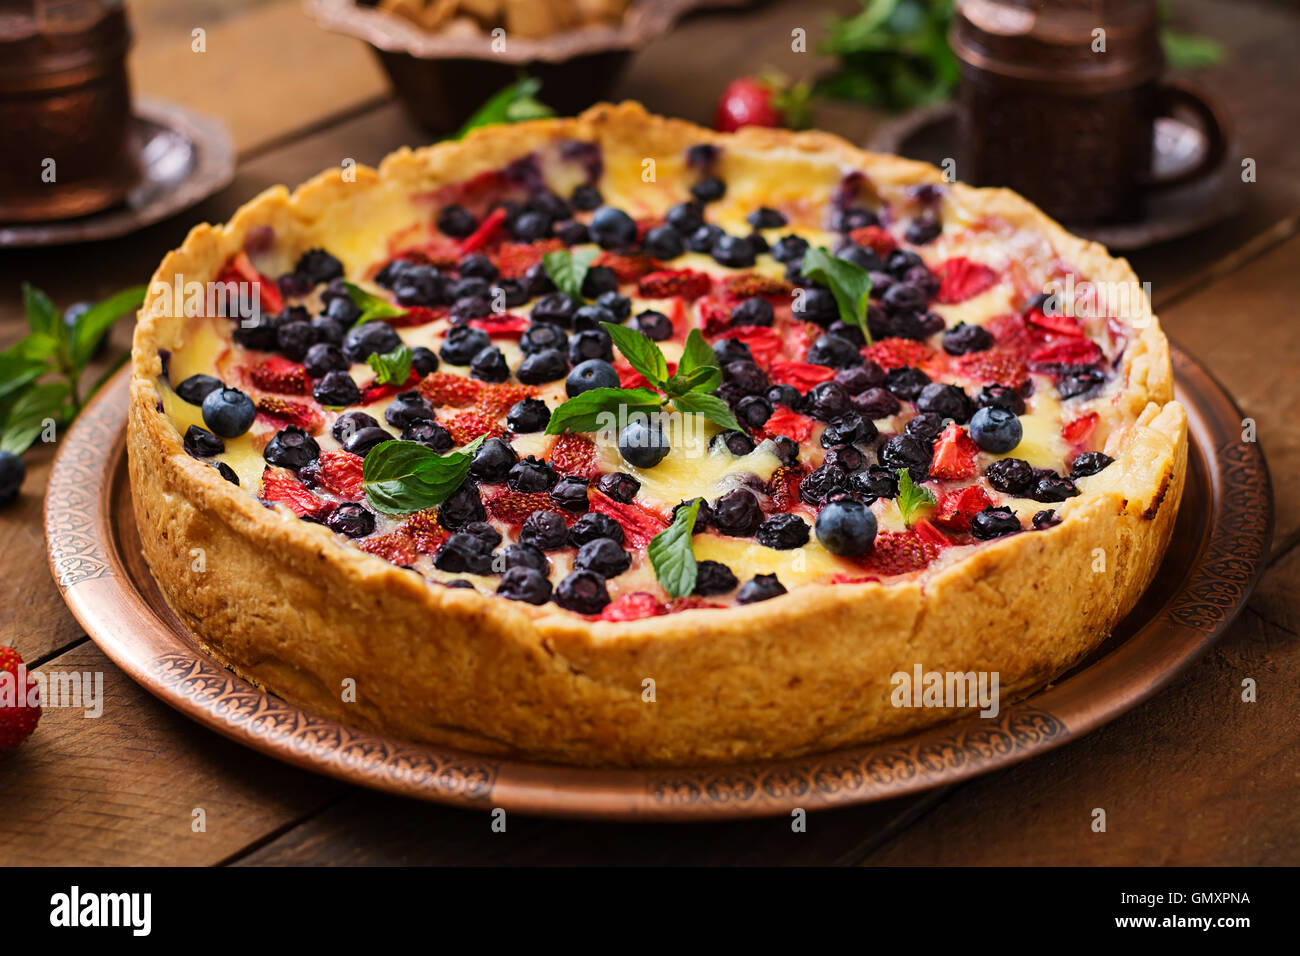 French tart (flan) with berries and custard. - Stock Image